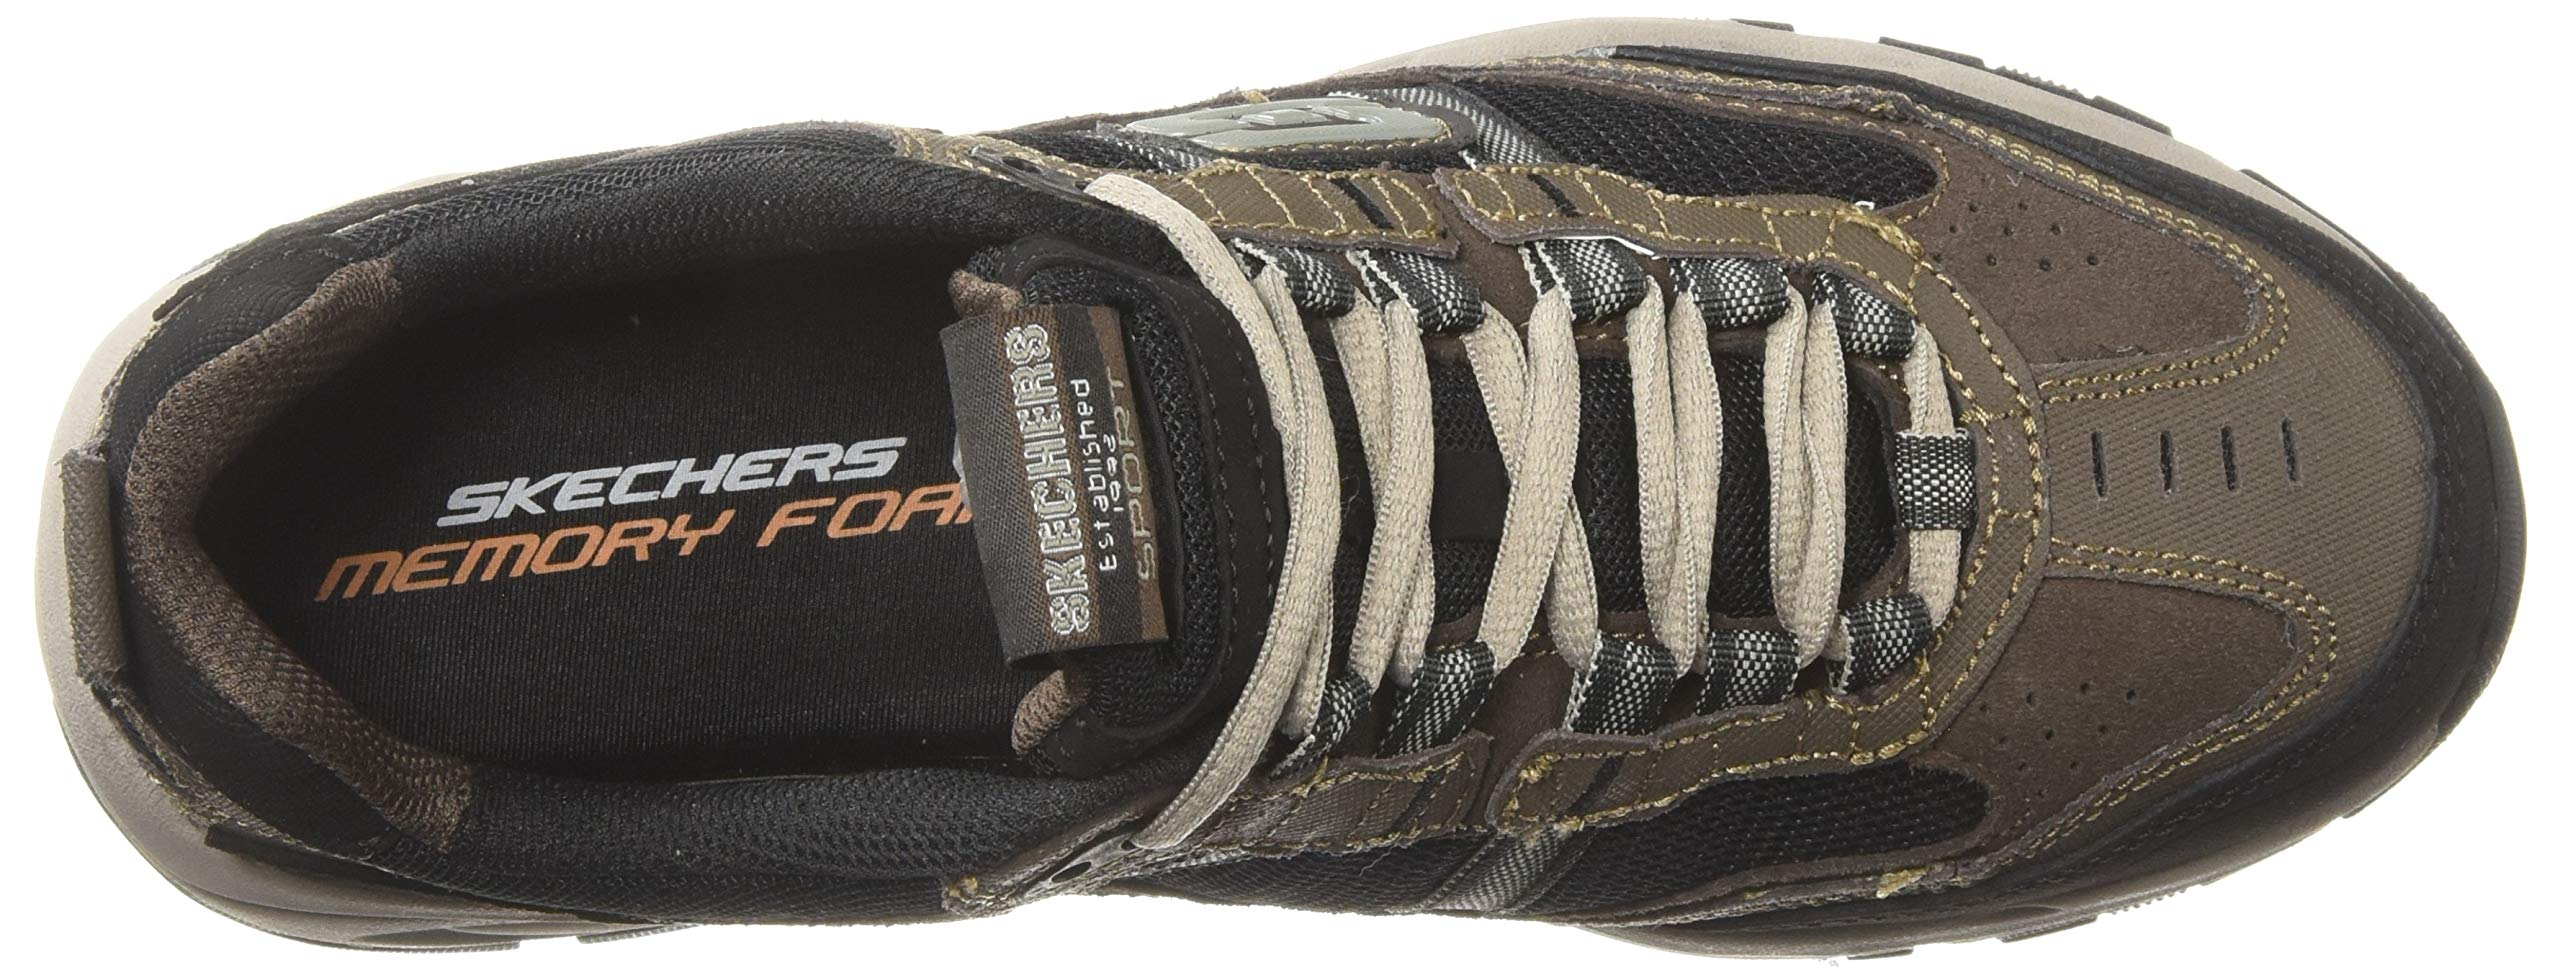 72033c44c88f0 Skechers Sport Men's Vigor 2.0 Trait Memory Foam Sneaker, Brown/Black, 10 M  US